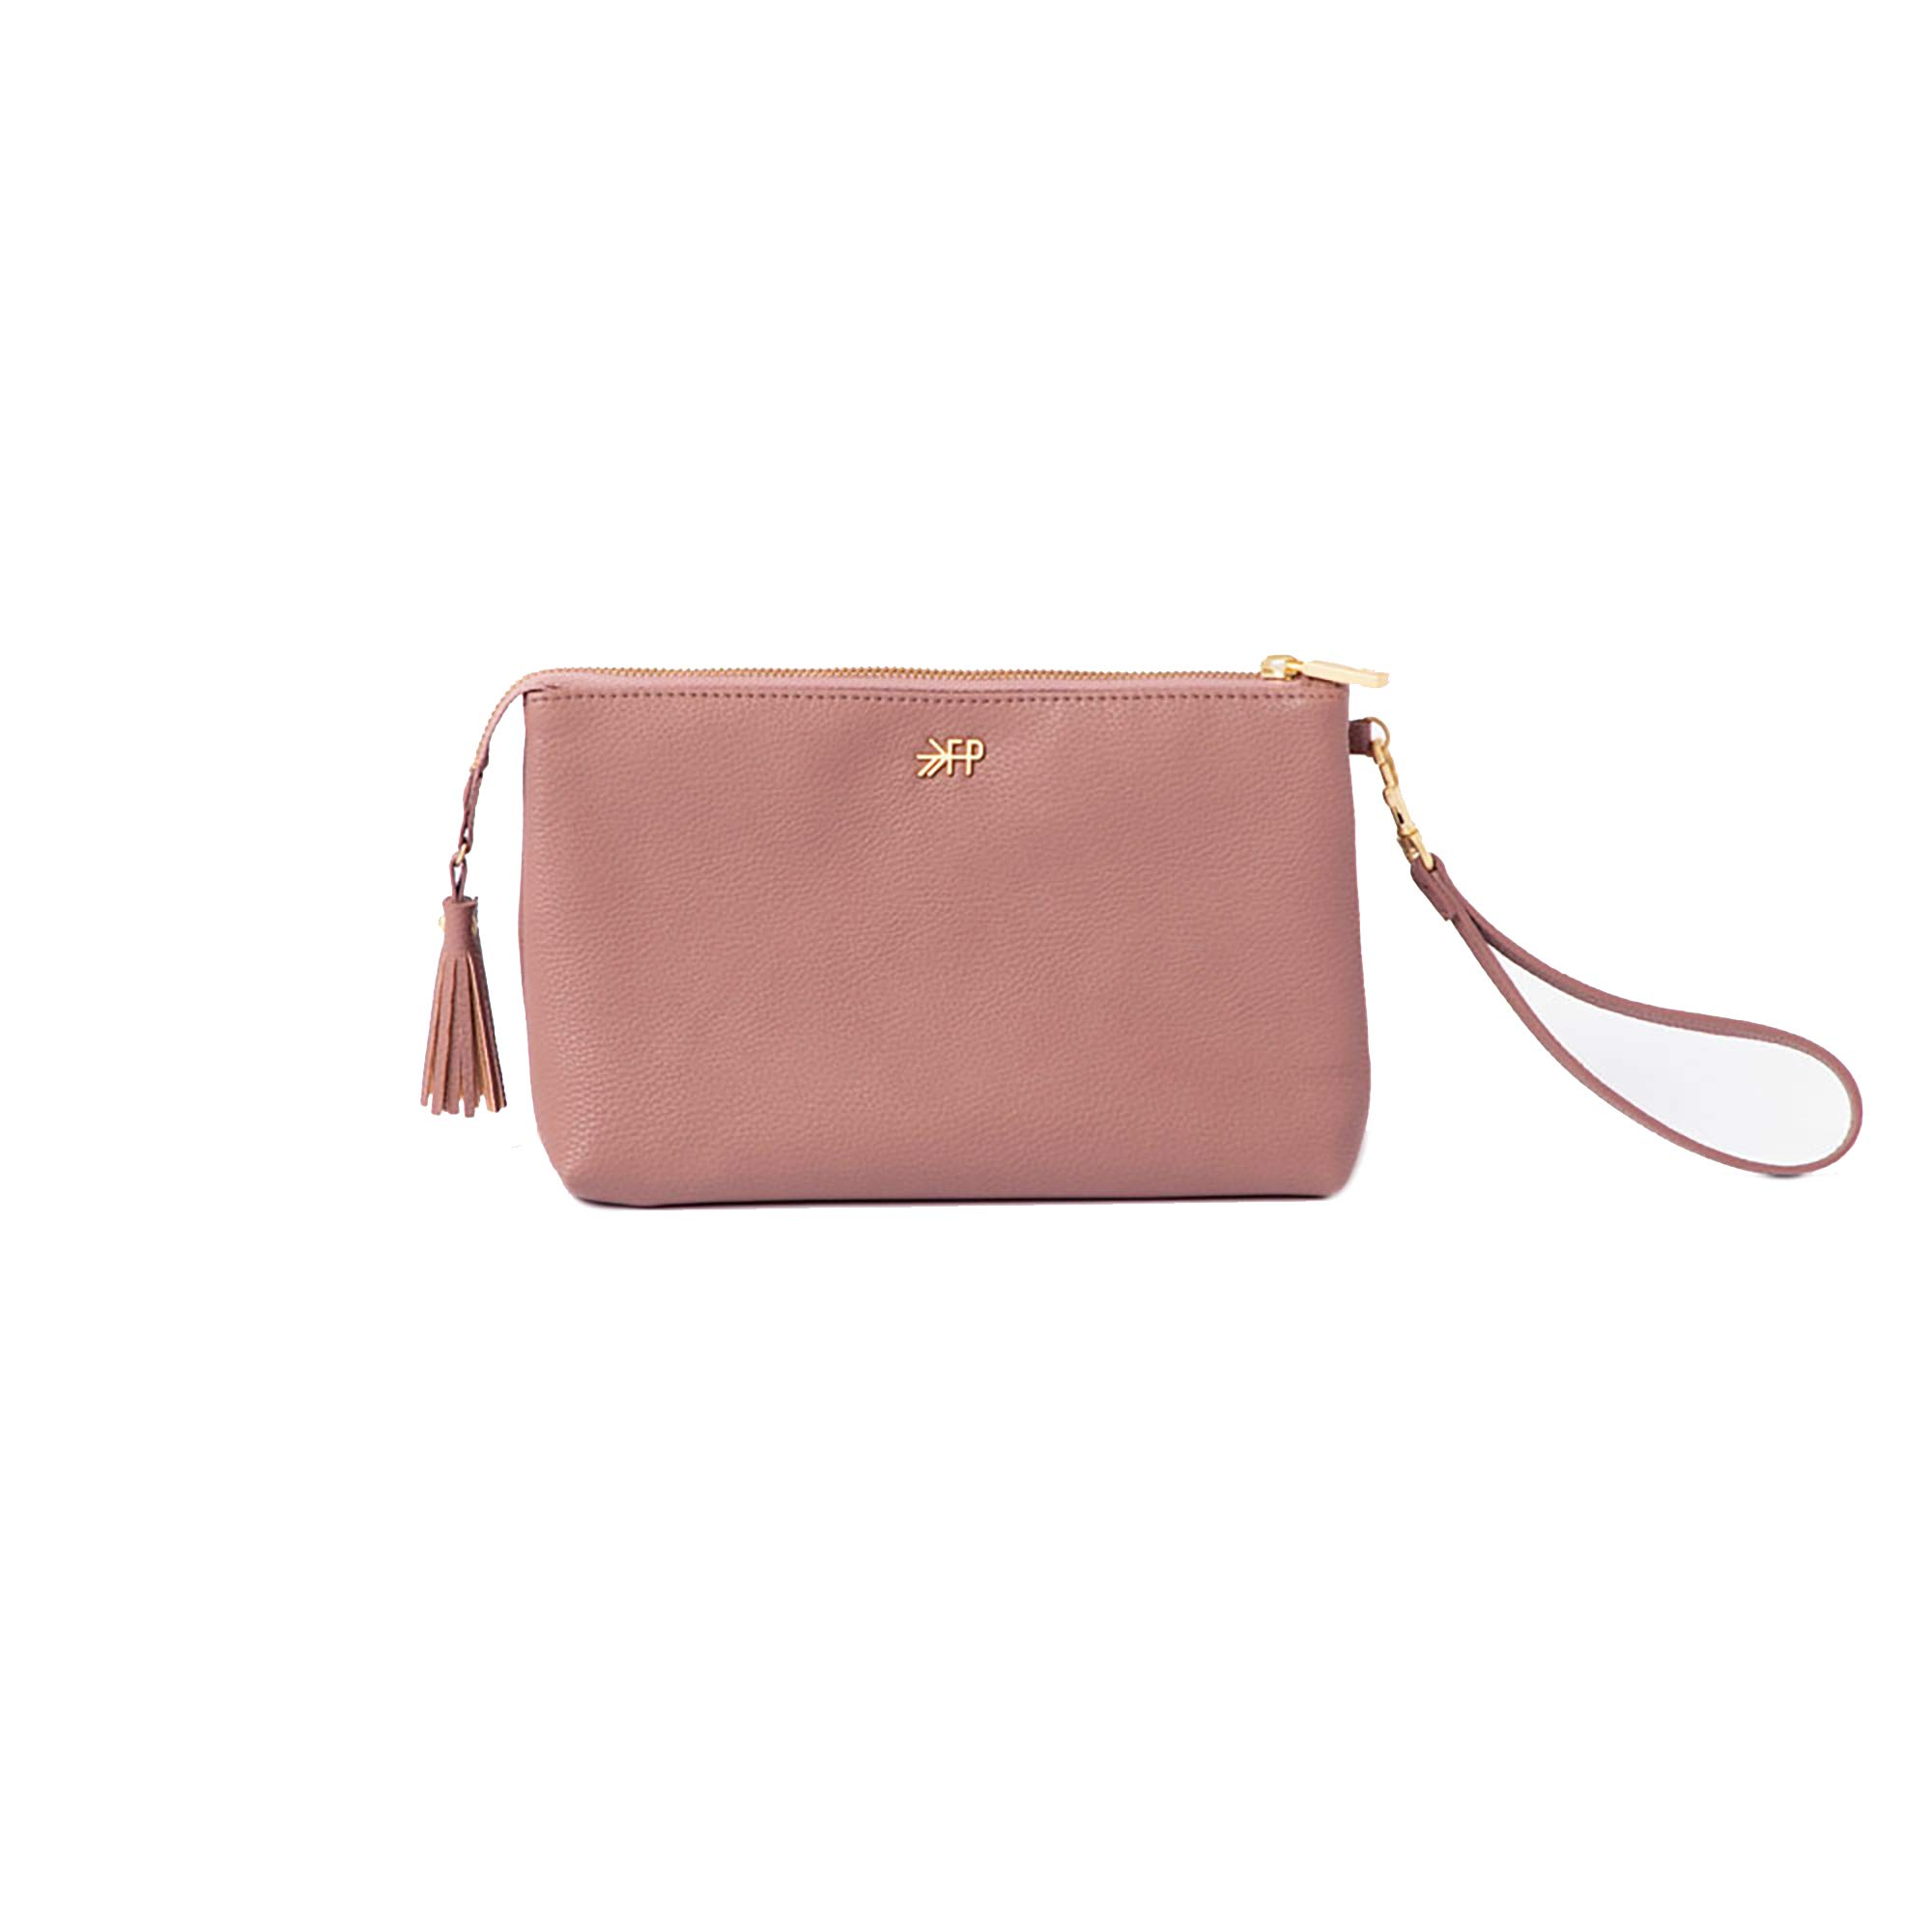 Freshly Picked - Classic Zip Pouch - Diaper Bag Accessory - Vegan Leather Clutch Wallet - Desert Rose Pink